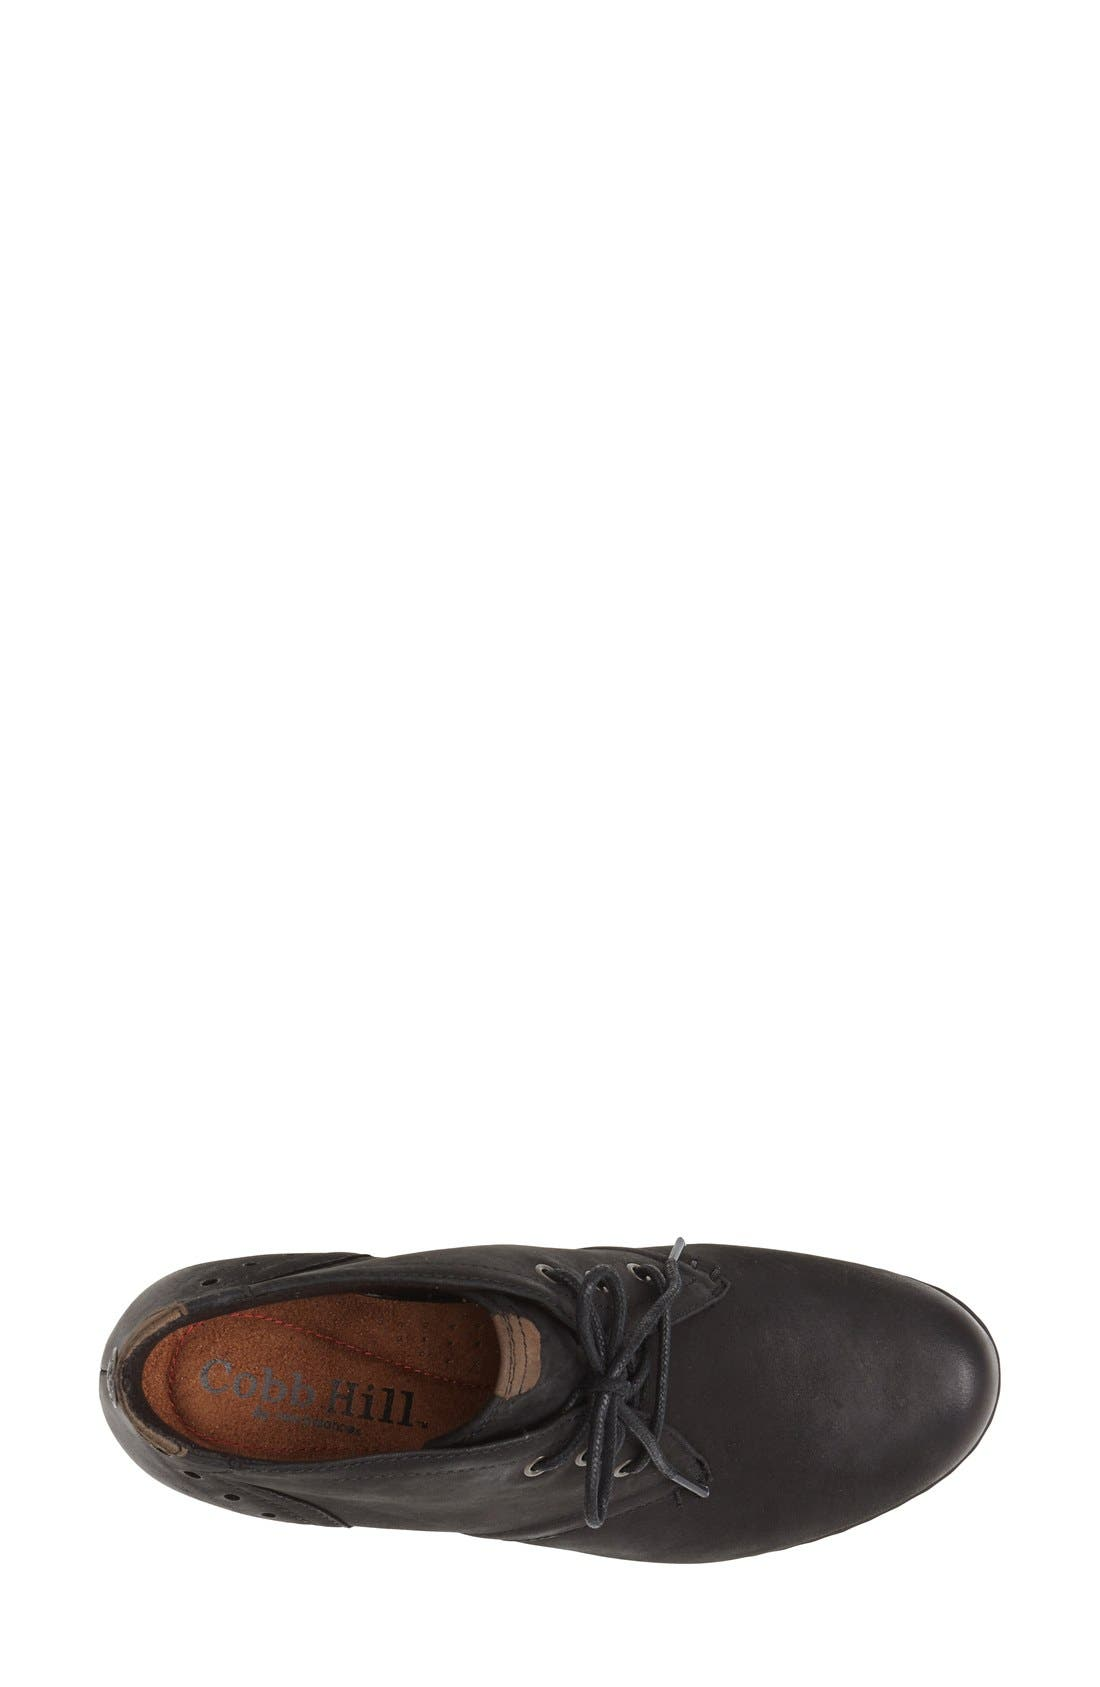 Aria Leather Boot,                             Alternate thumbnail 2, color,                             BLACK